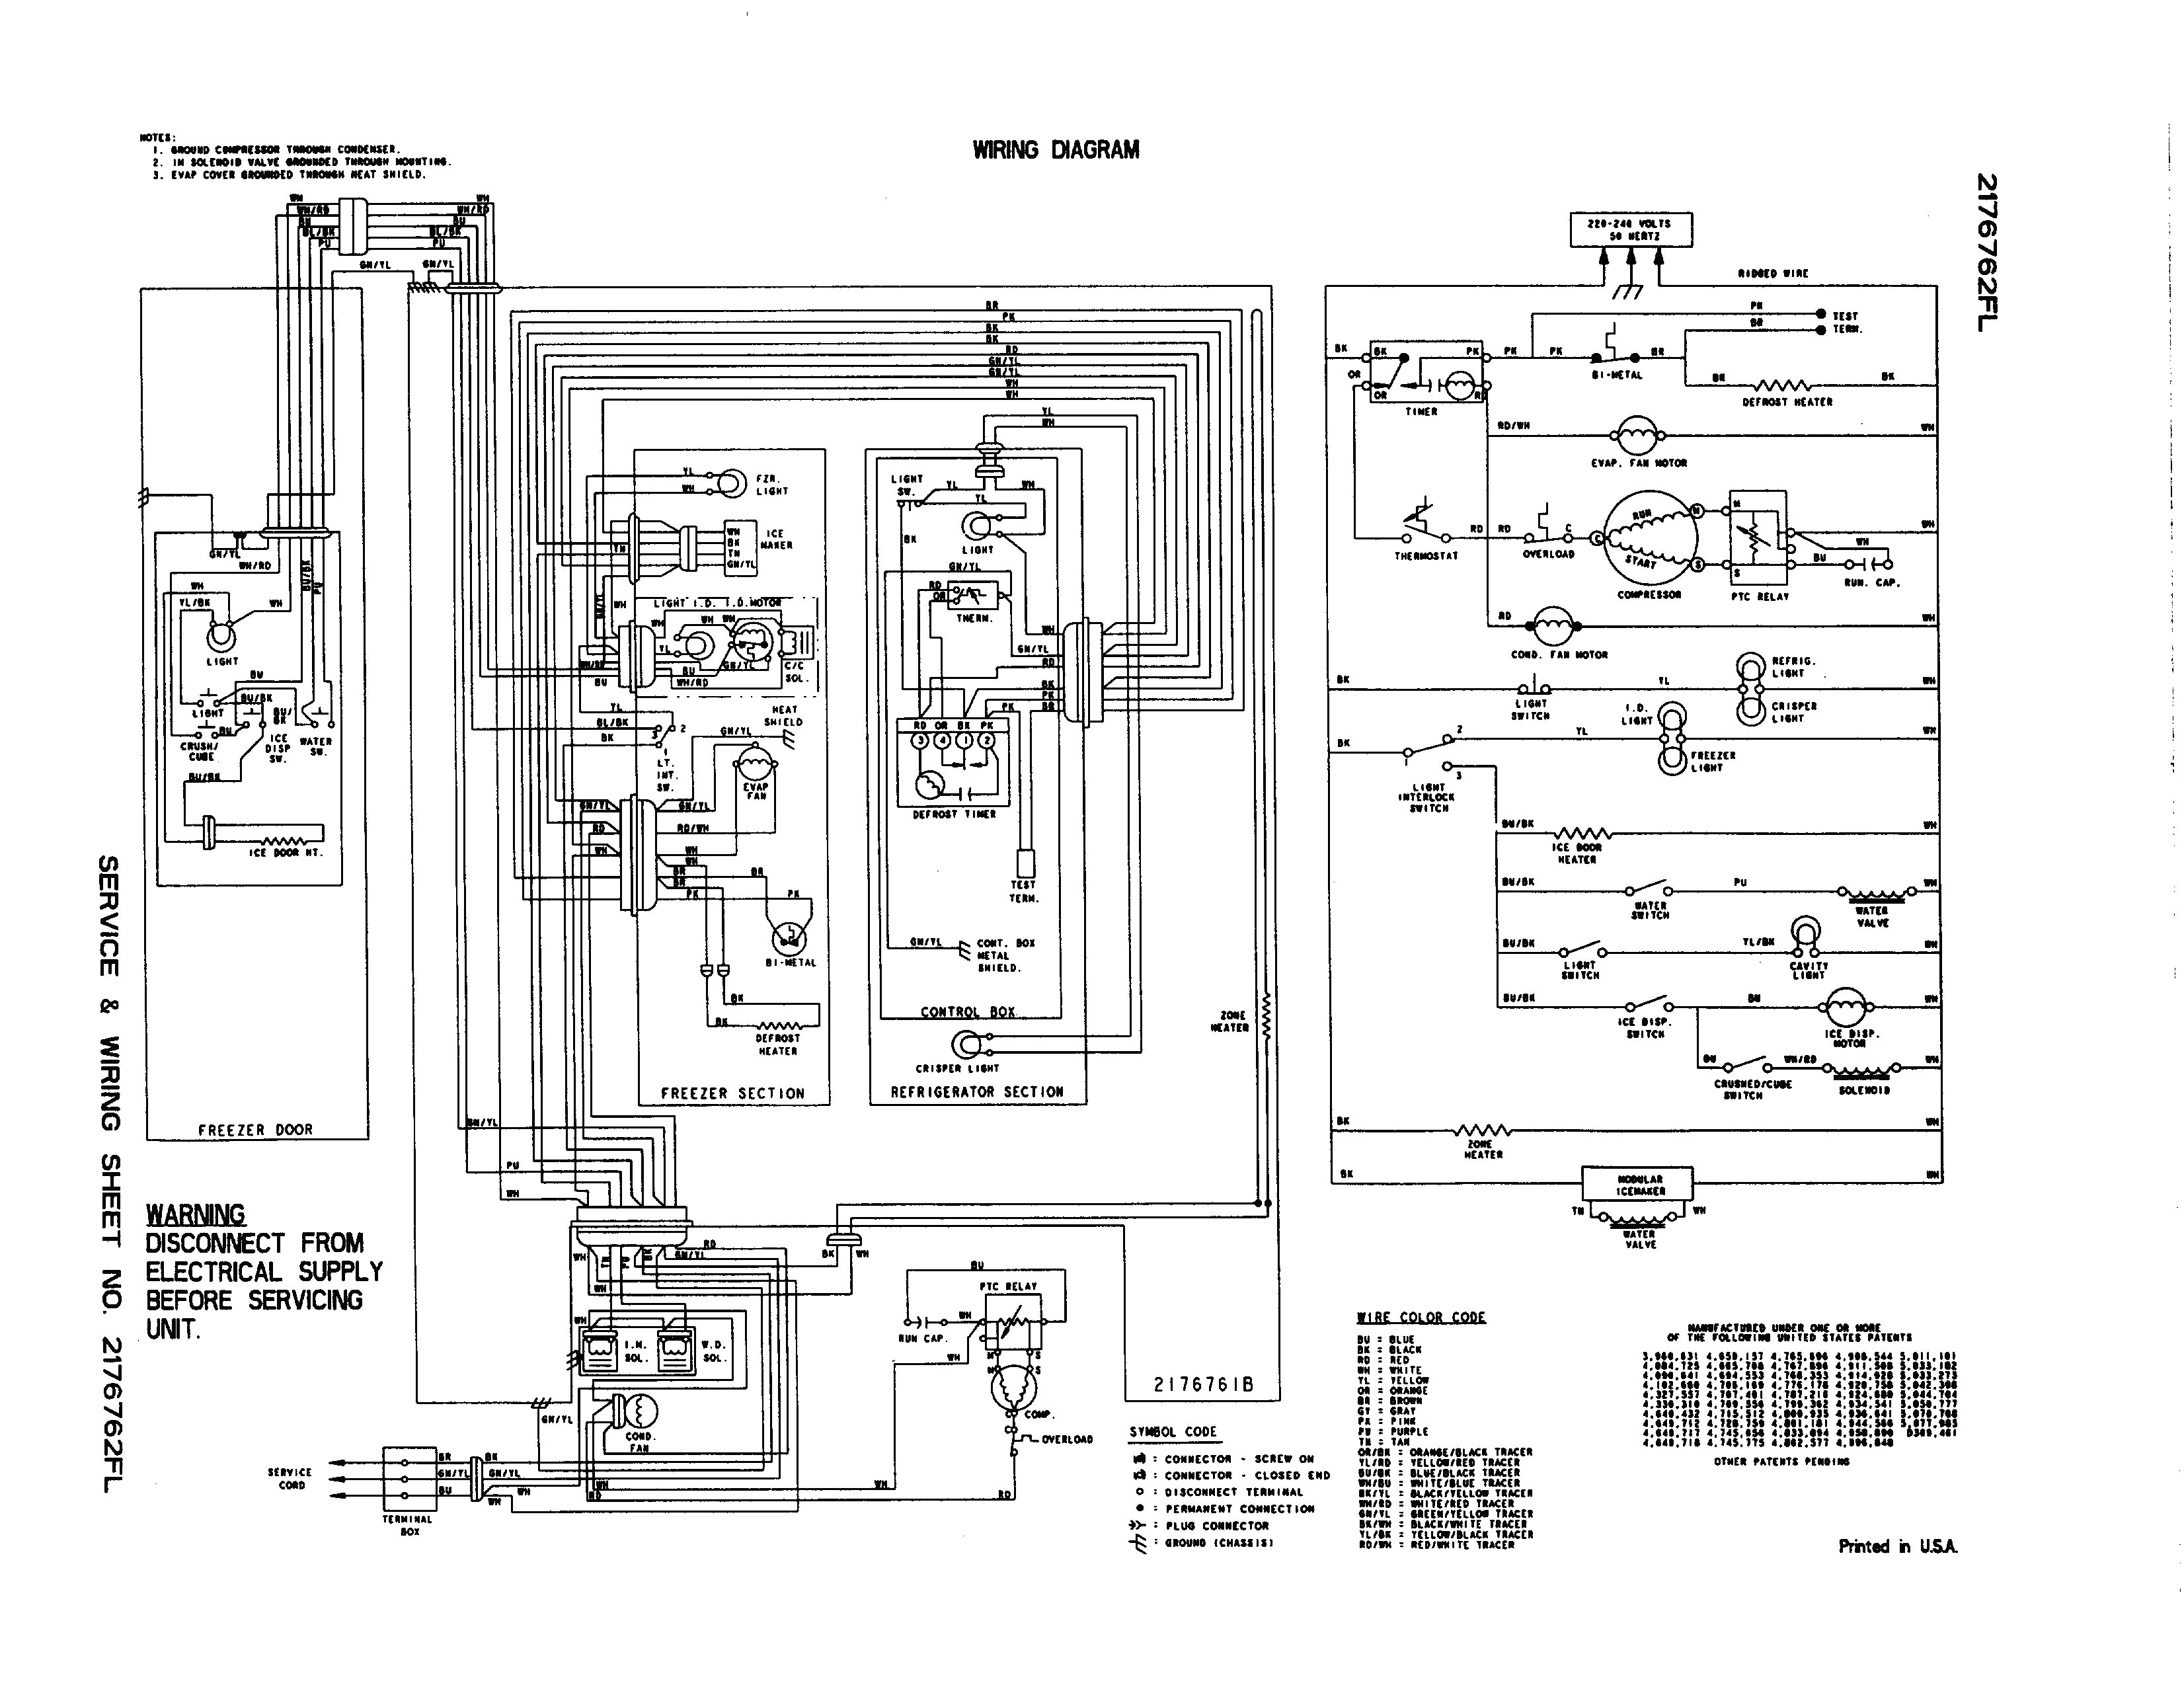 Whirlpool Refrigerator Wiring Diagram Electrical Schematic For Striking Kenmore Ice Maker And